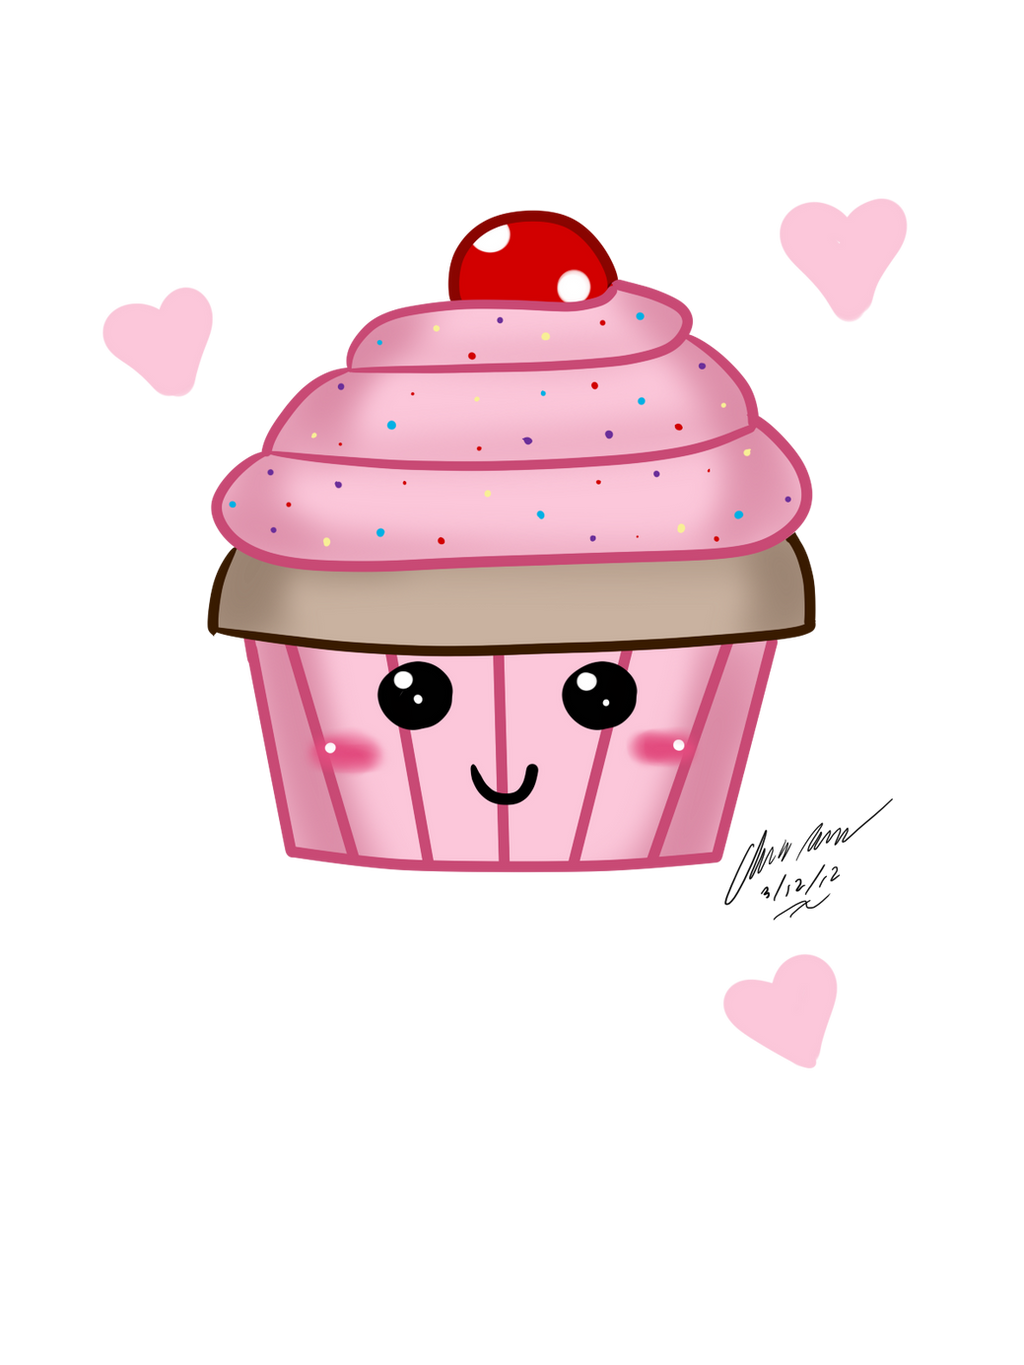 Cute Little Cupcake by Wonderland-Cupcake on DeviantArt